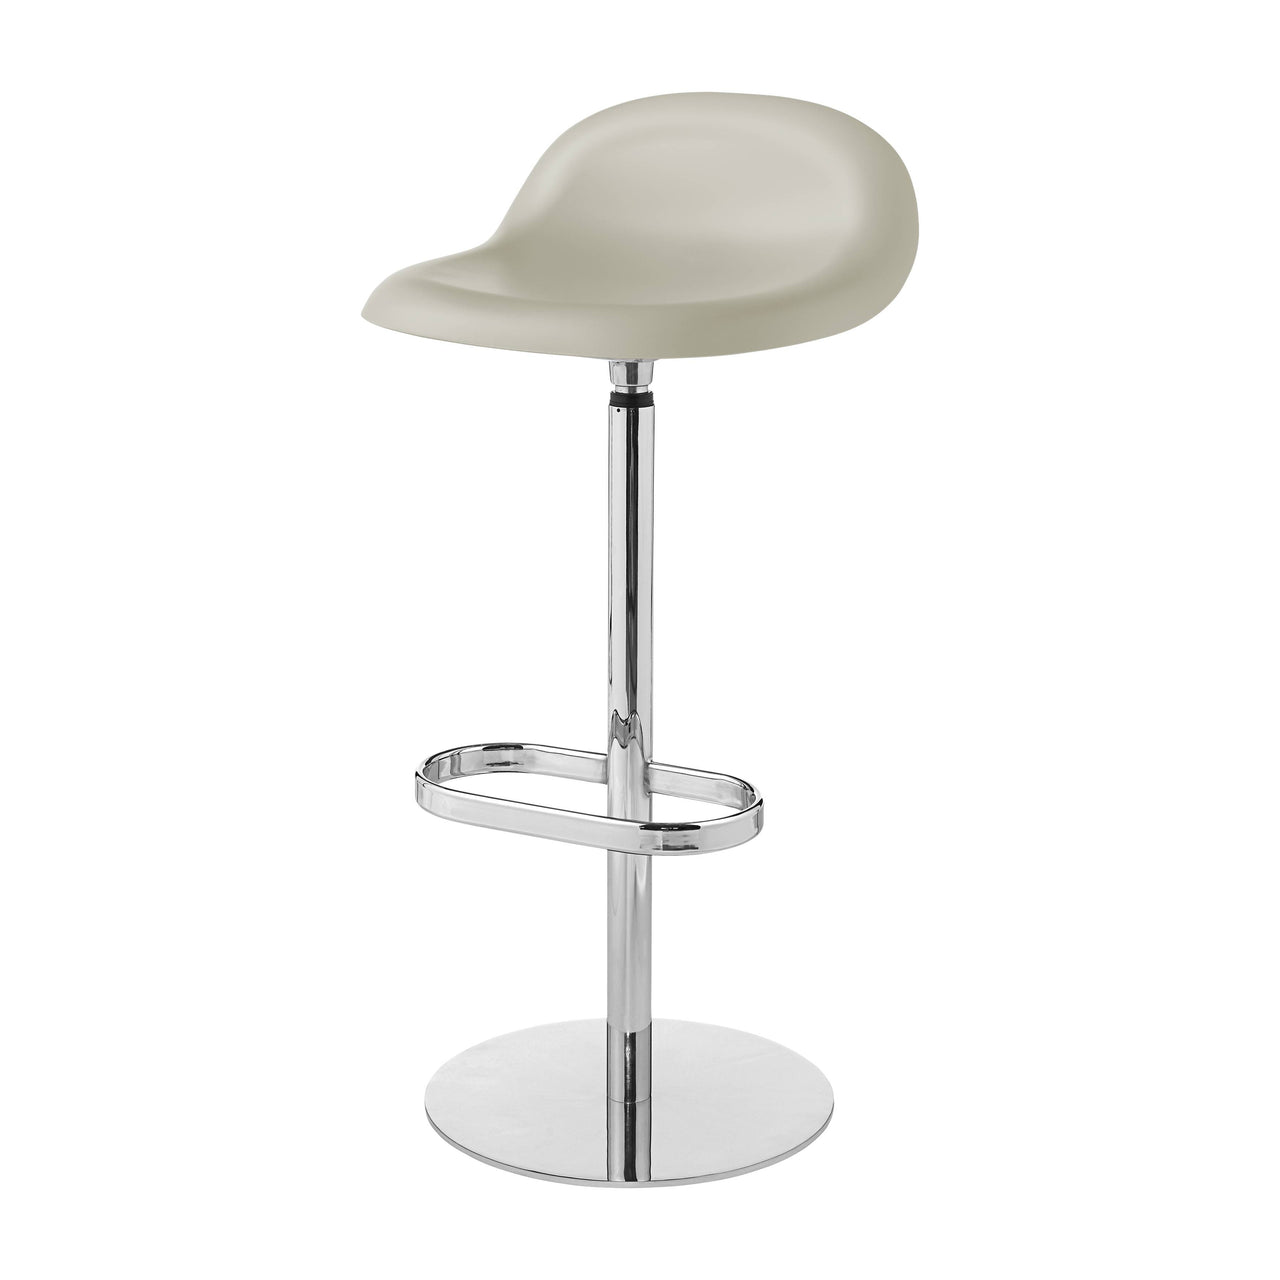 3D Bar Stool: Swivel Base + Moon Grey